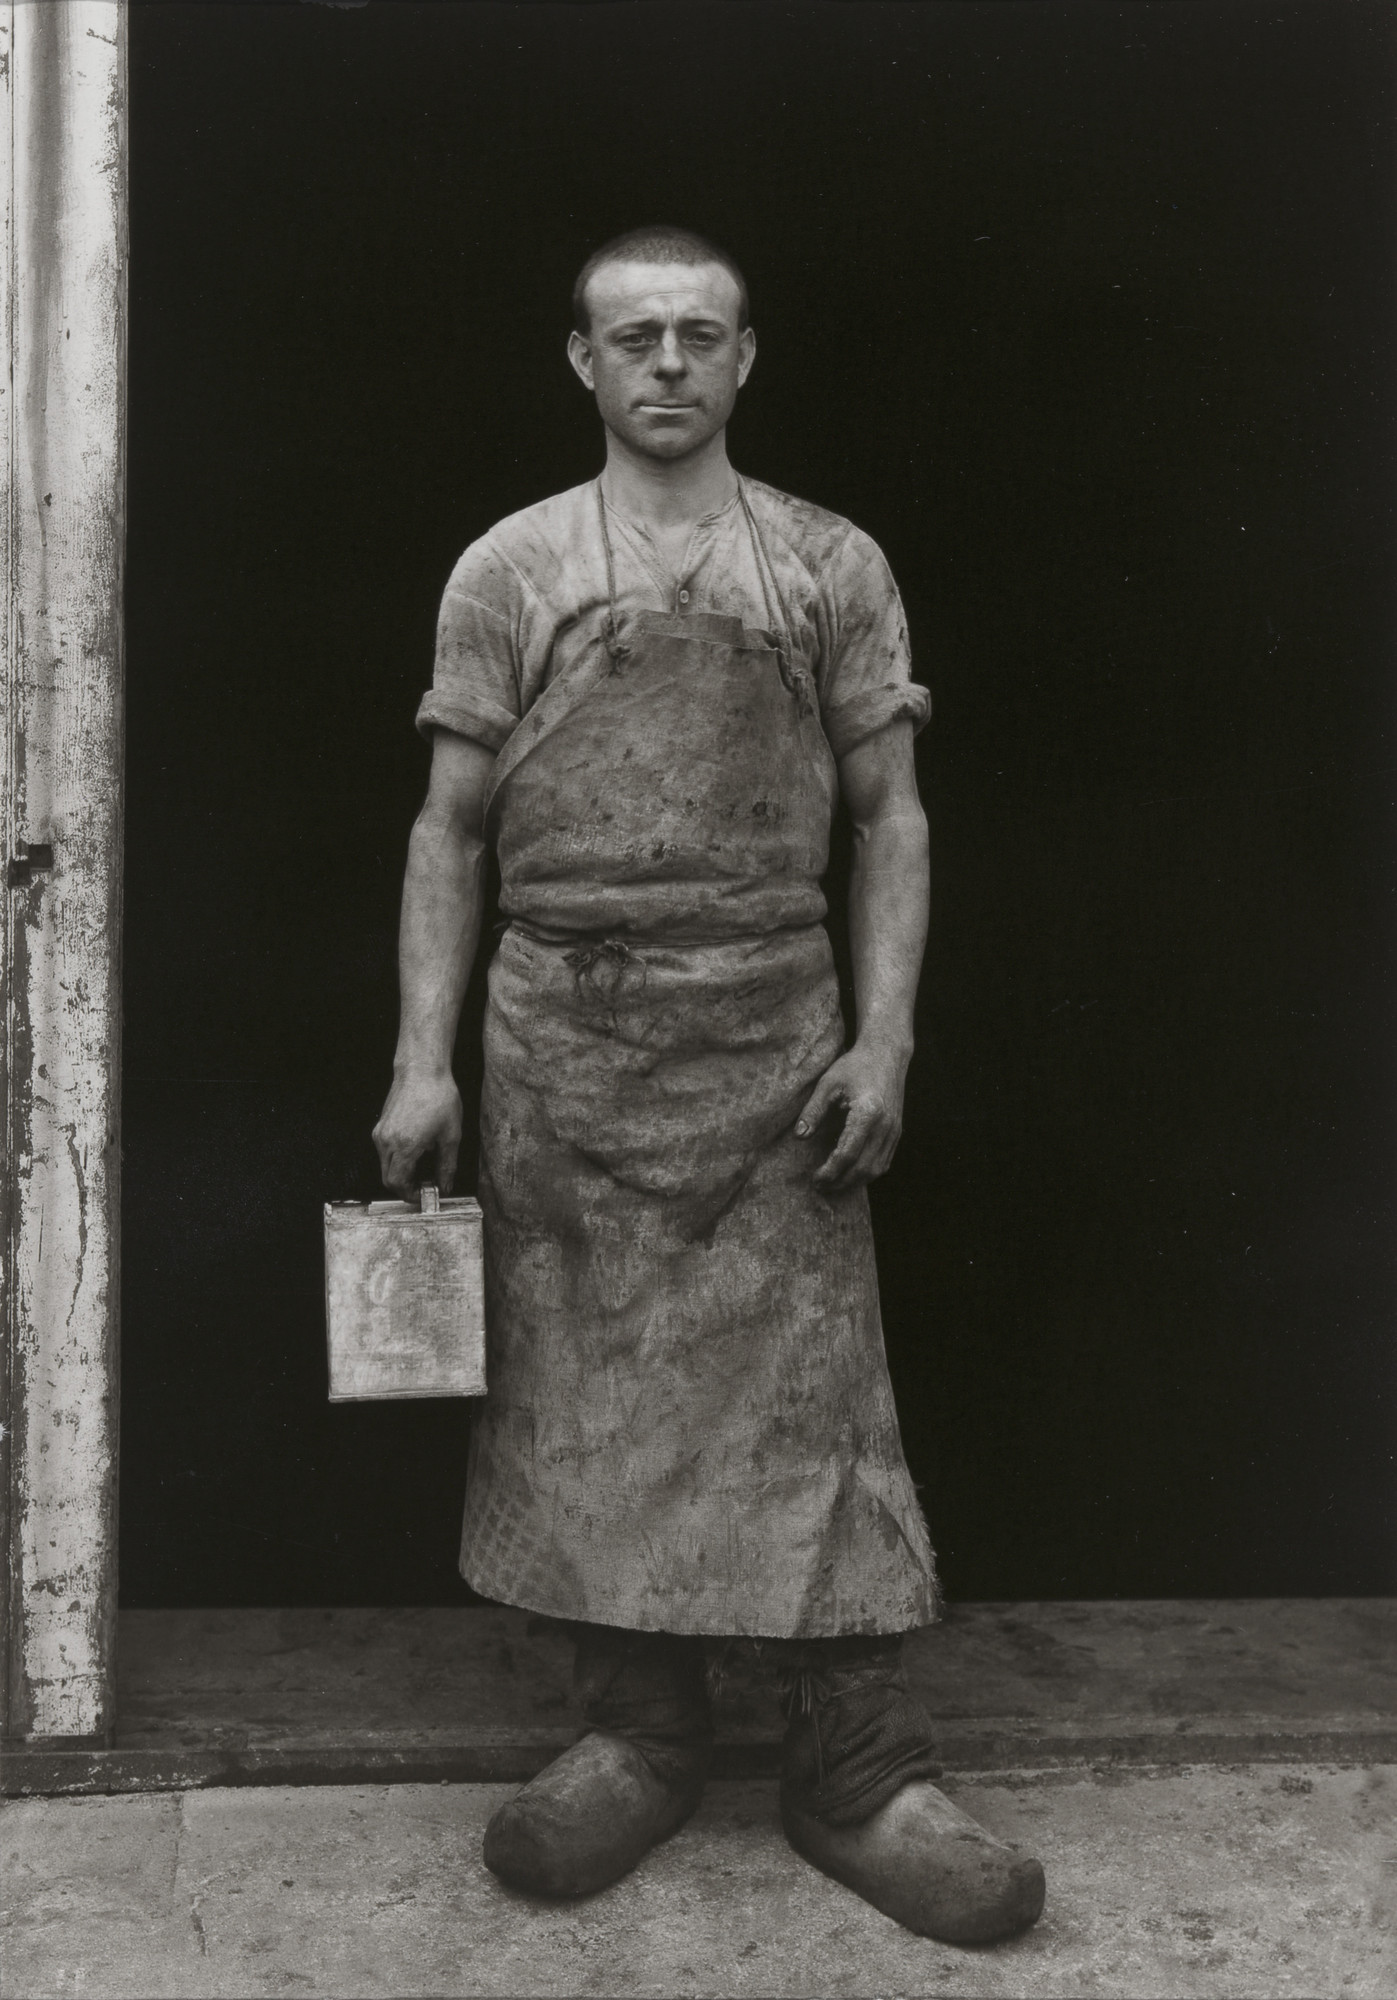 August Sander. Varnisher. c. 1930 | MoMA